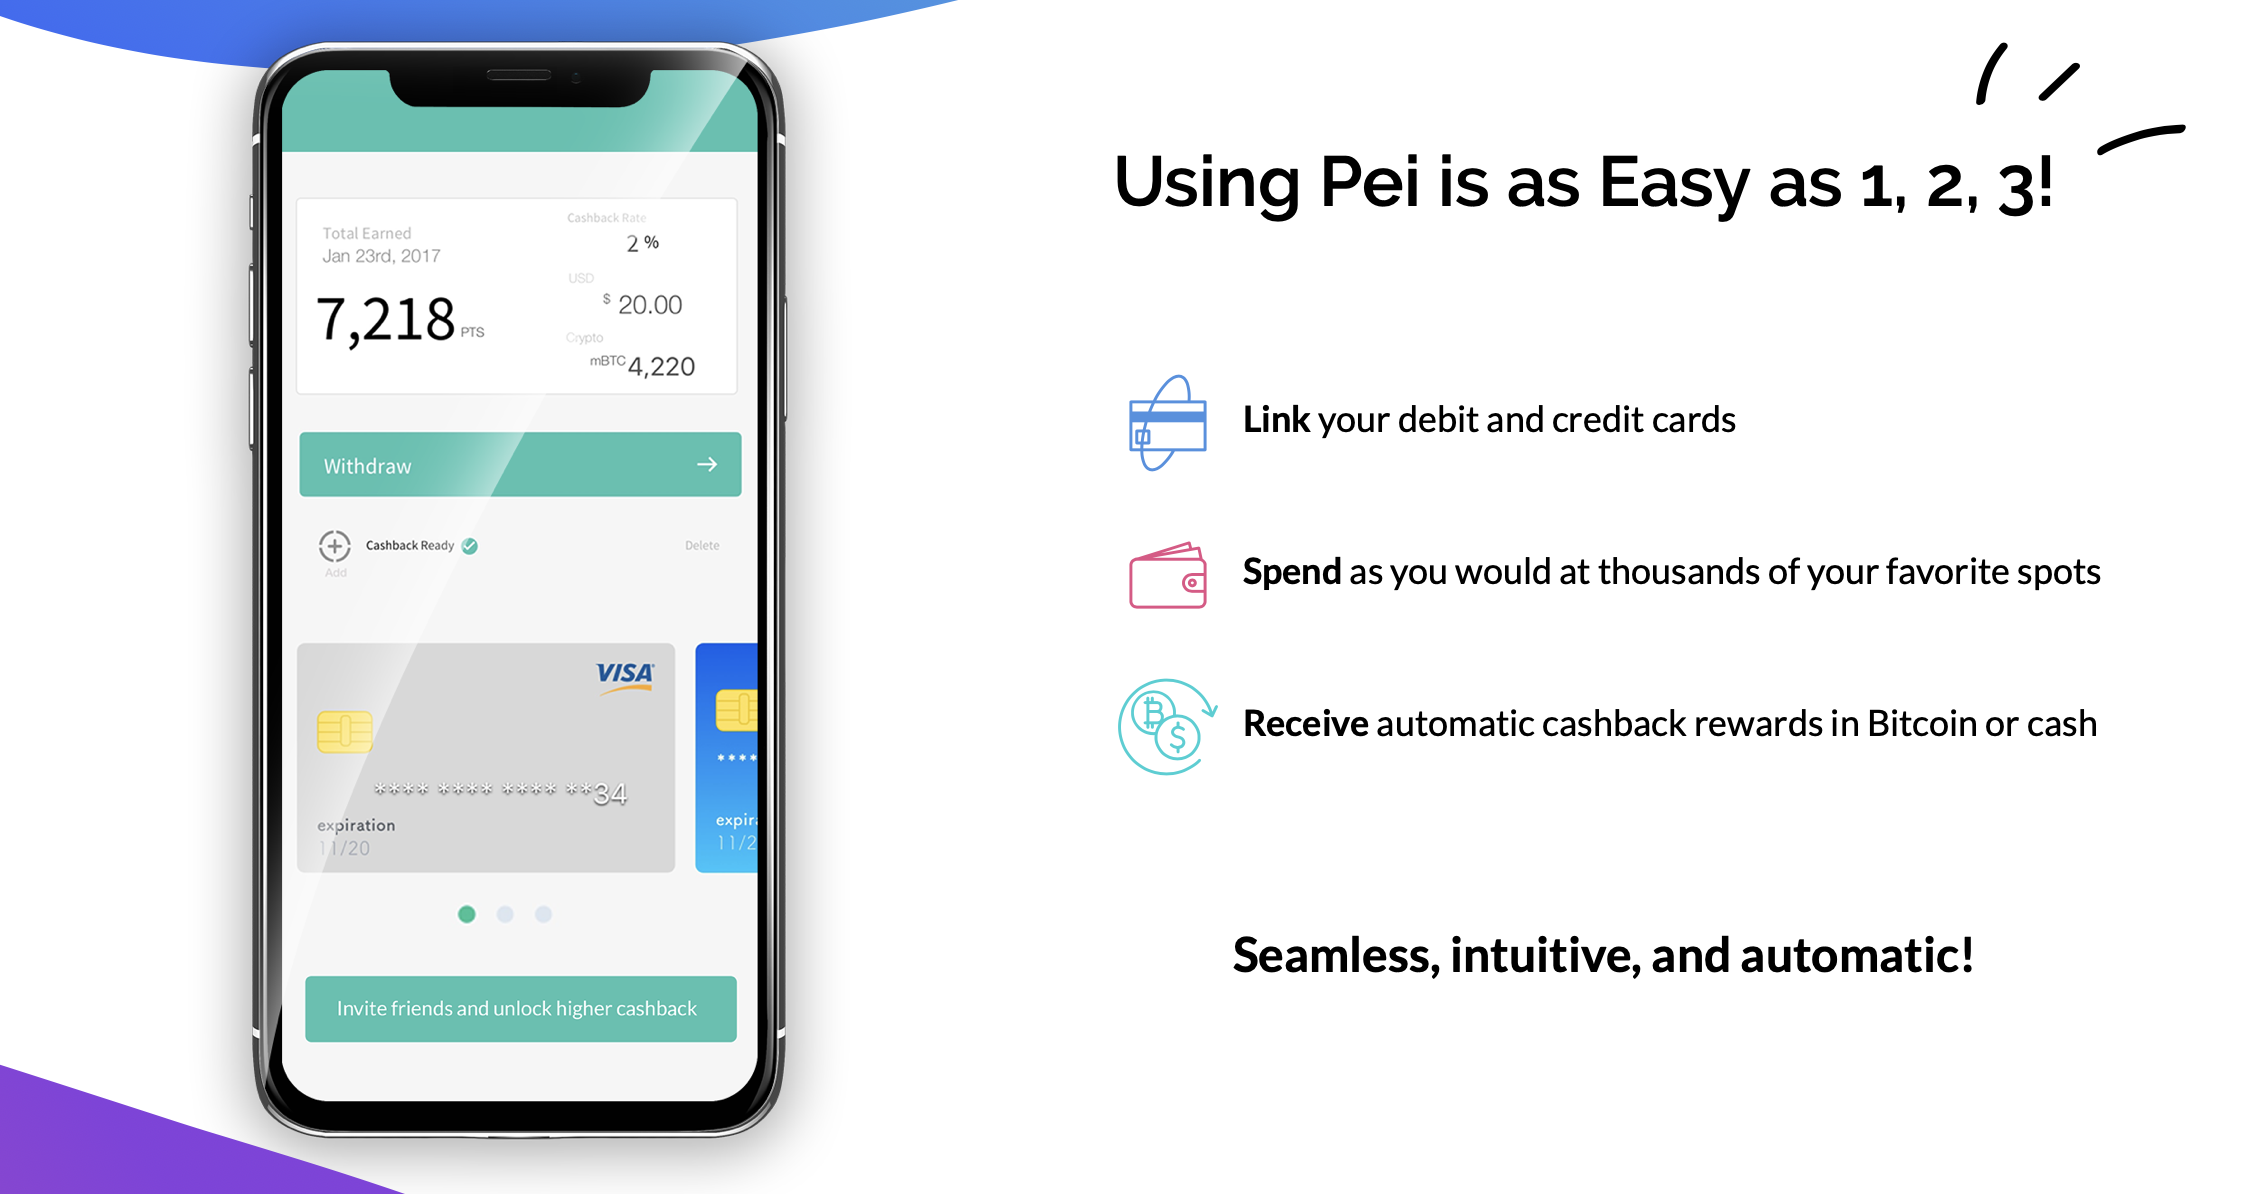 Check out Pei to start earning automatic cashback in